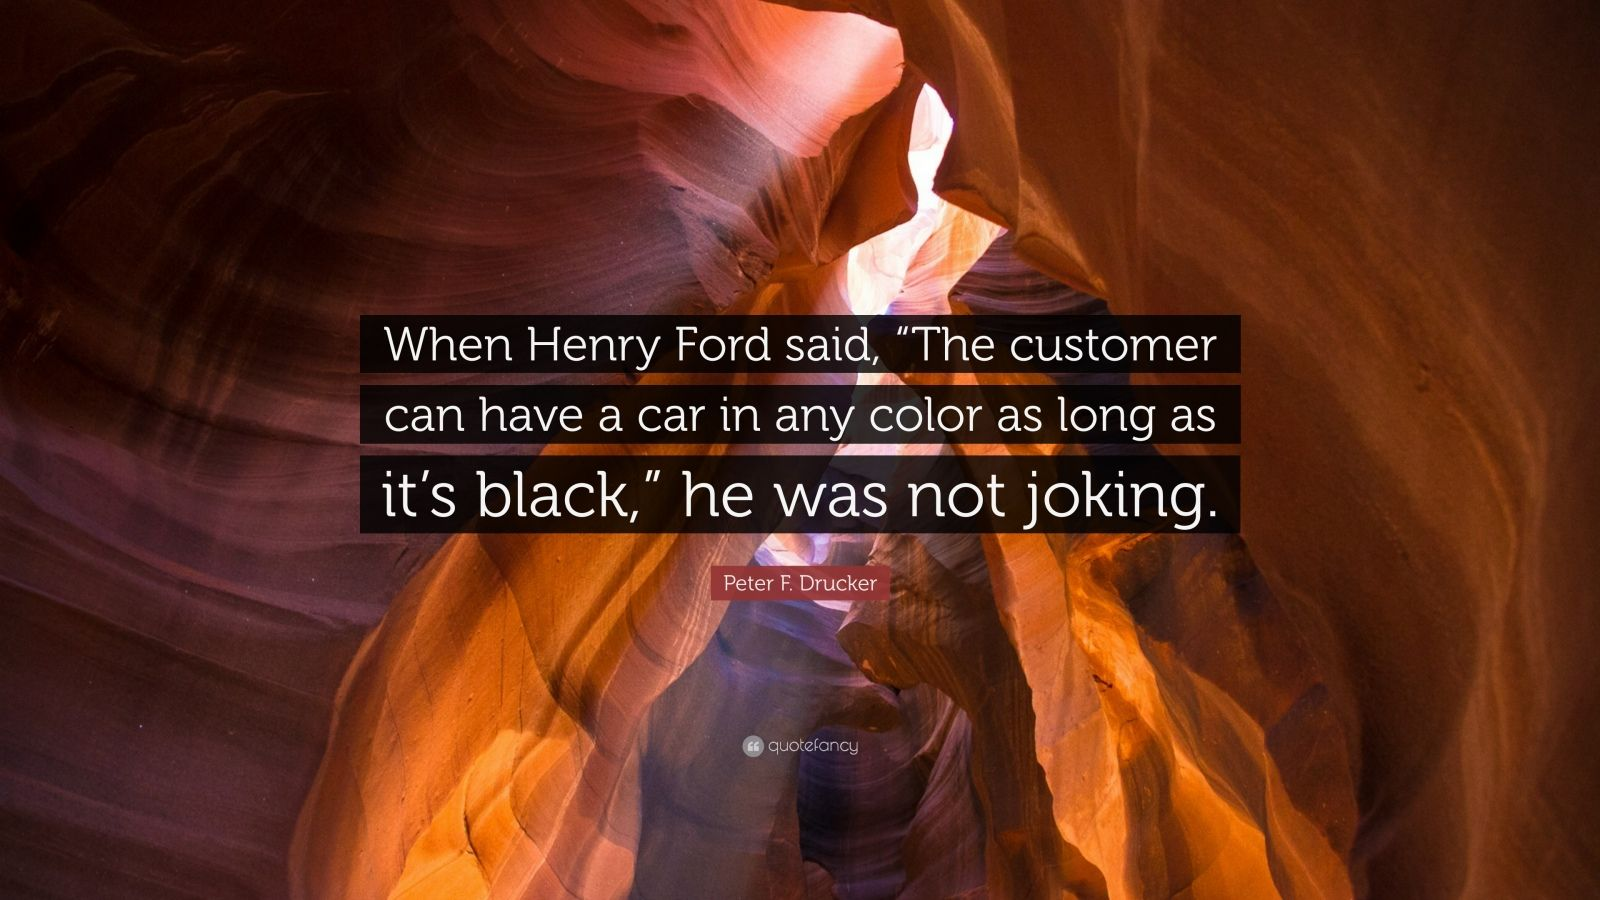 """Peter F. Drucker Quote: """"When Henry Ford said, """"The customer can have a car in any color as long as it's black,"""" he was not joking."""""""